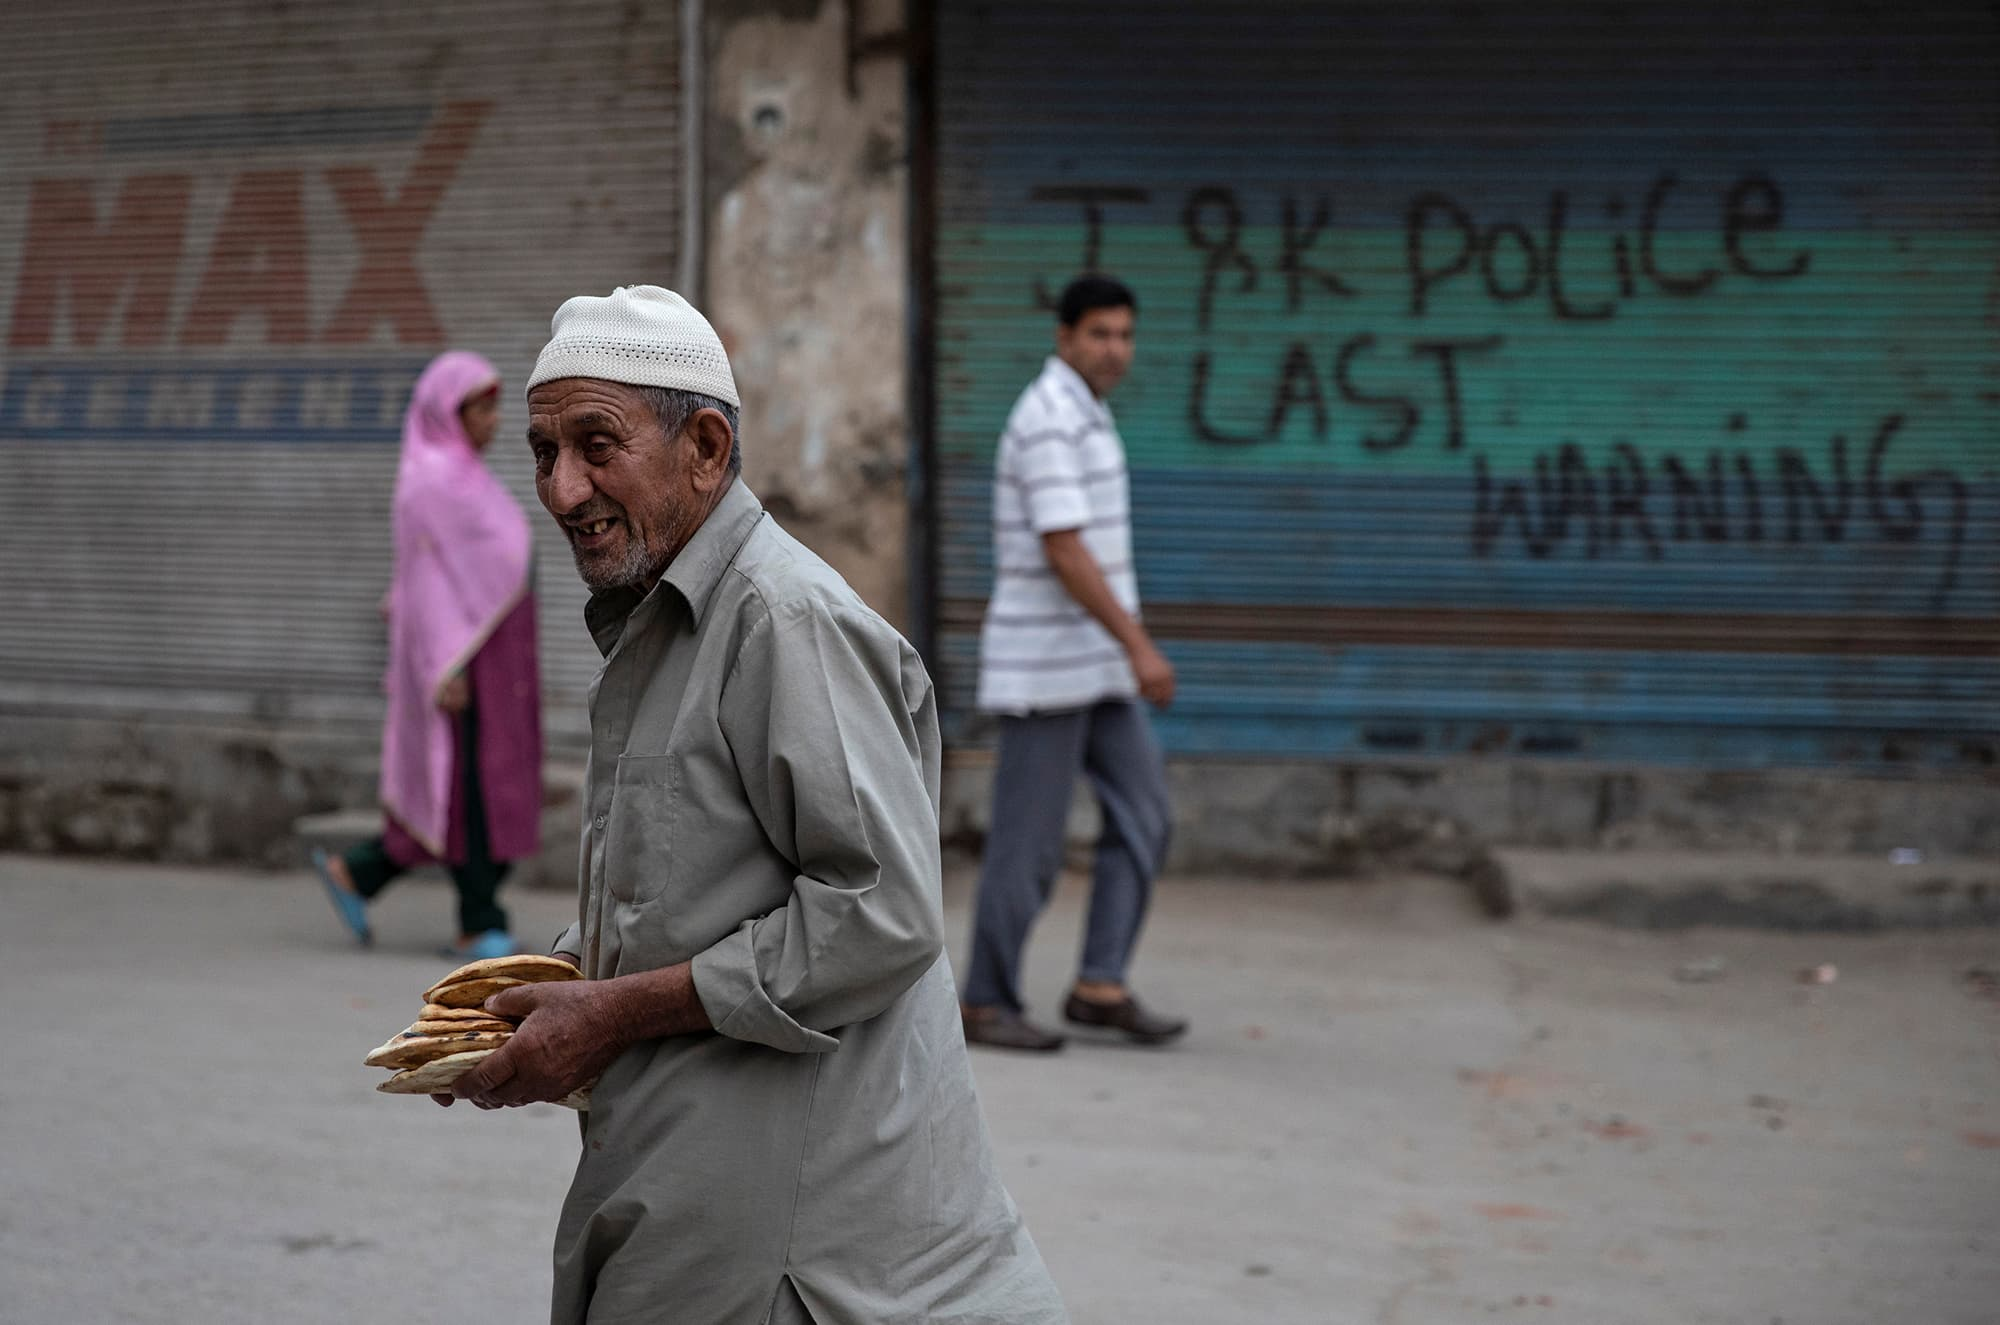 Residents of Srinagar walk along a street under curfew. ─ Reuters